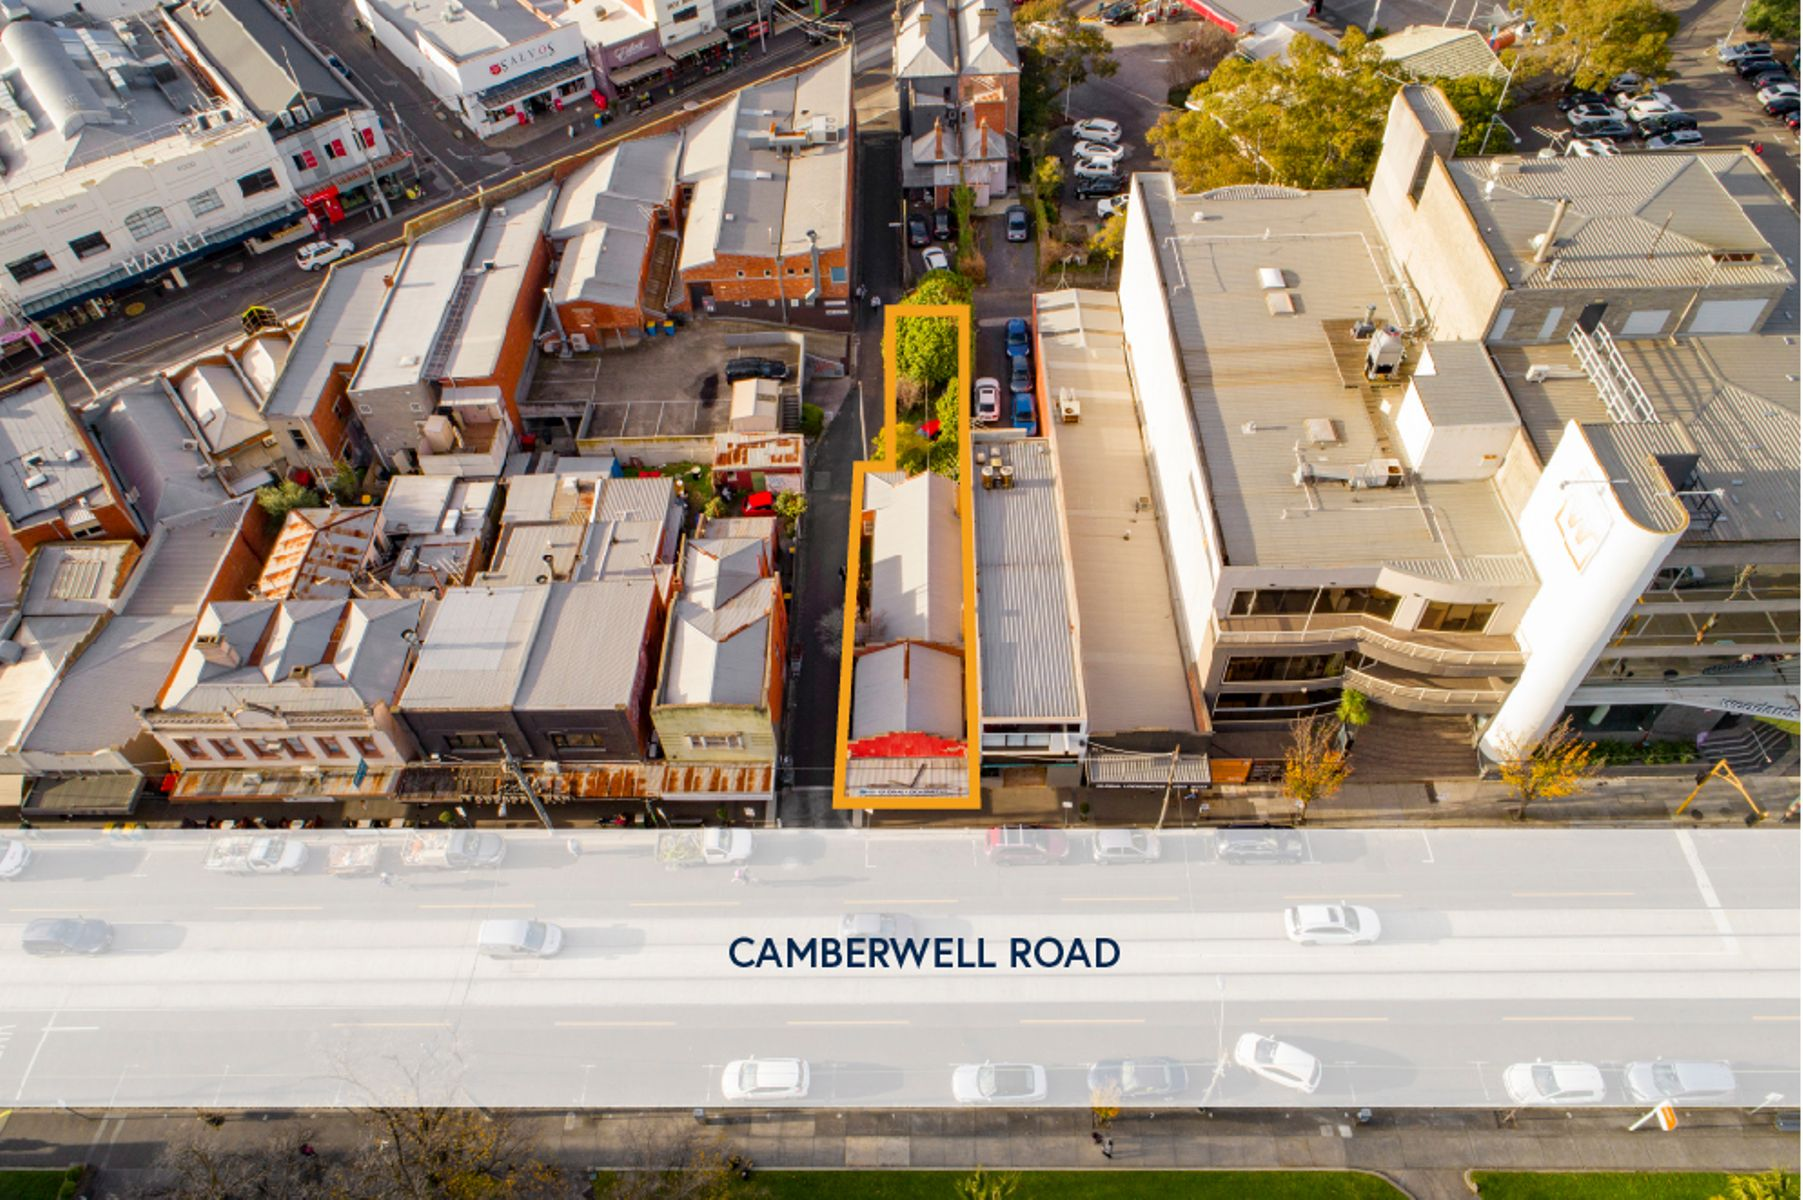 267 Camberwell Road 509 OVERLAY PROOF 1